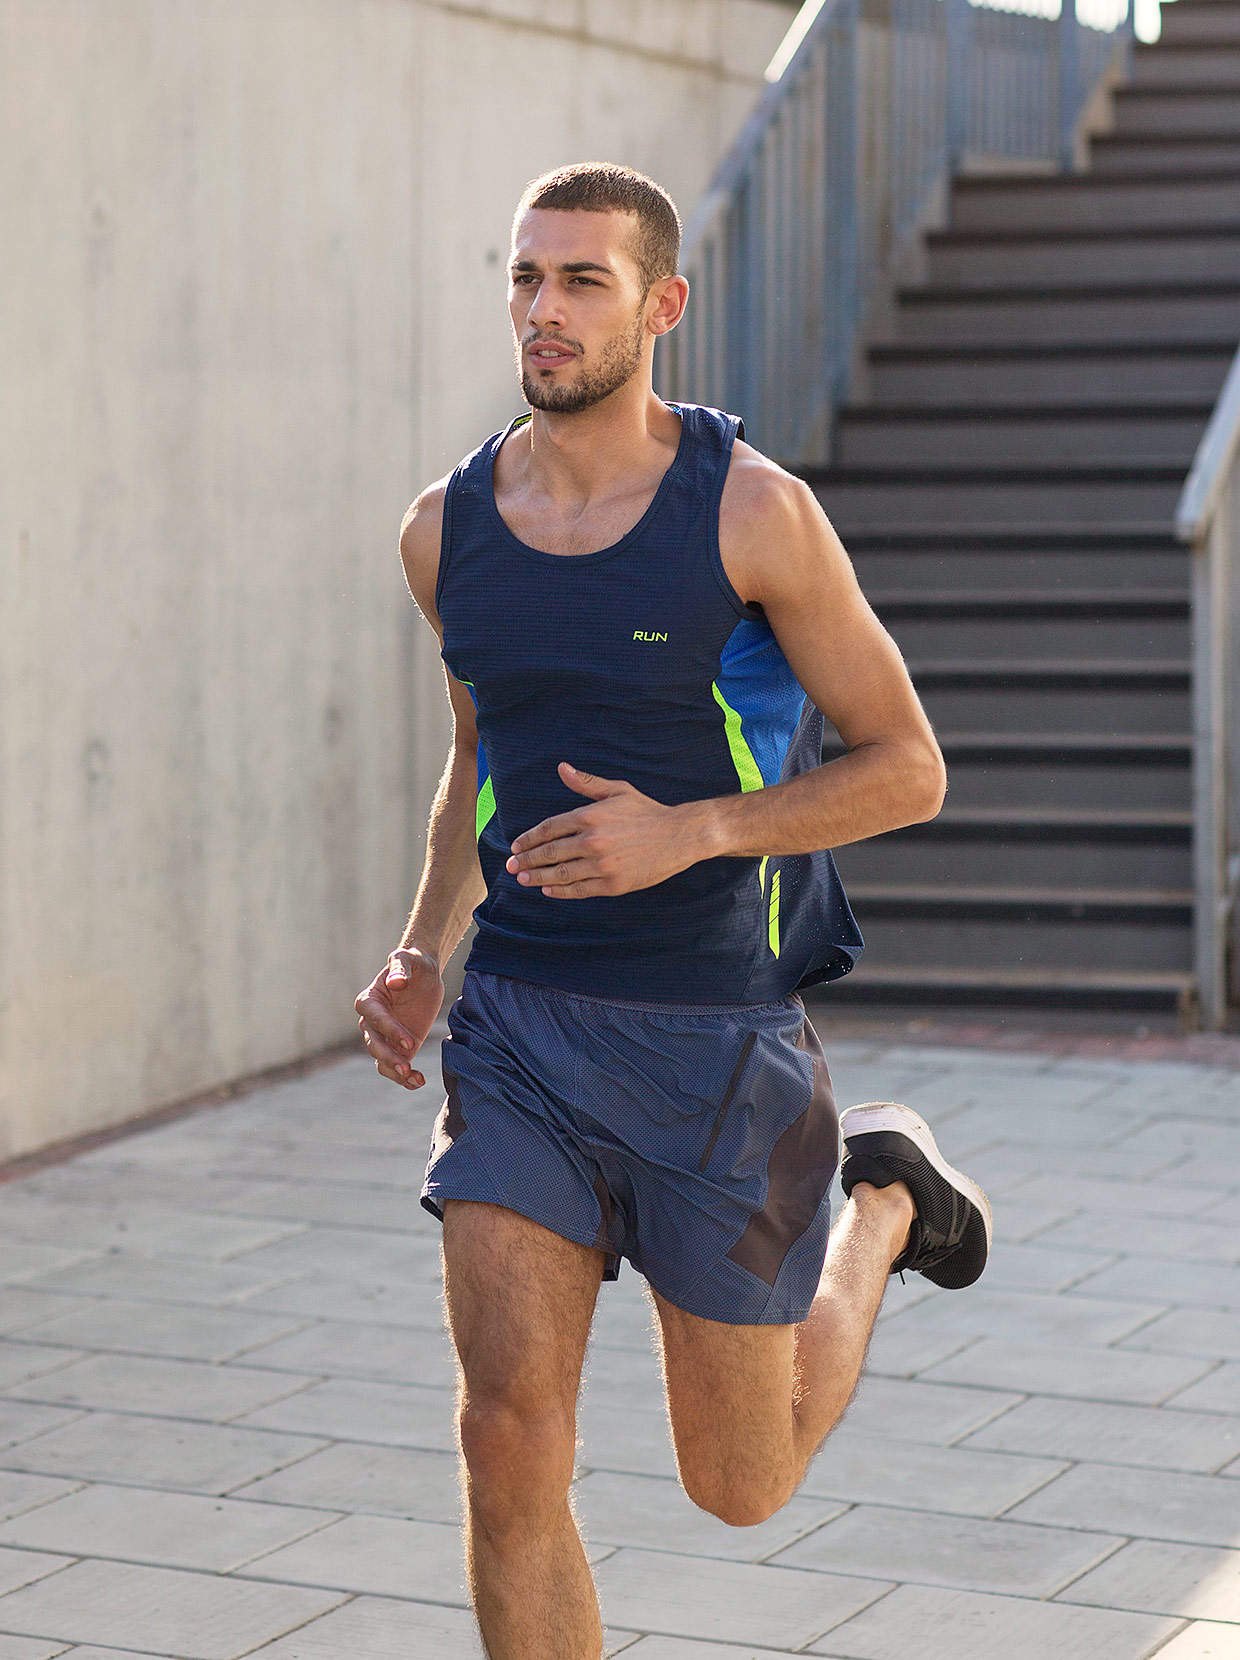 heffernan_male-athletes_2953_crop_flare